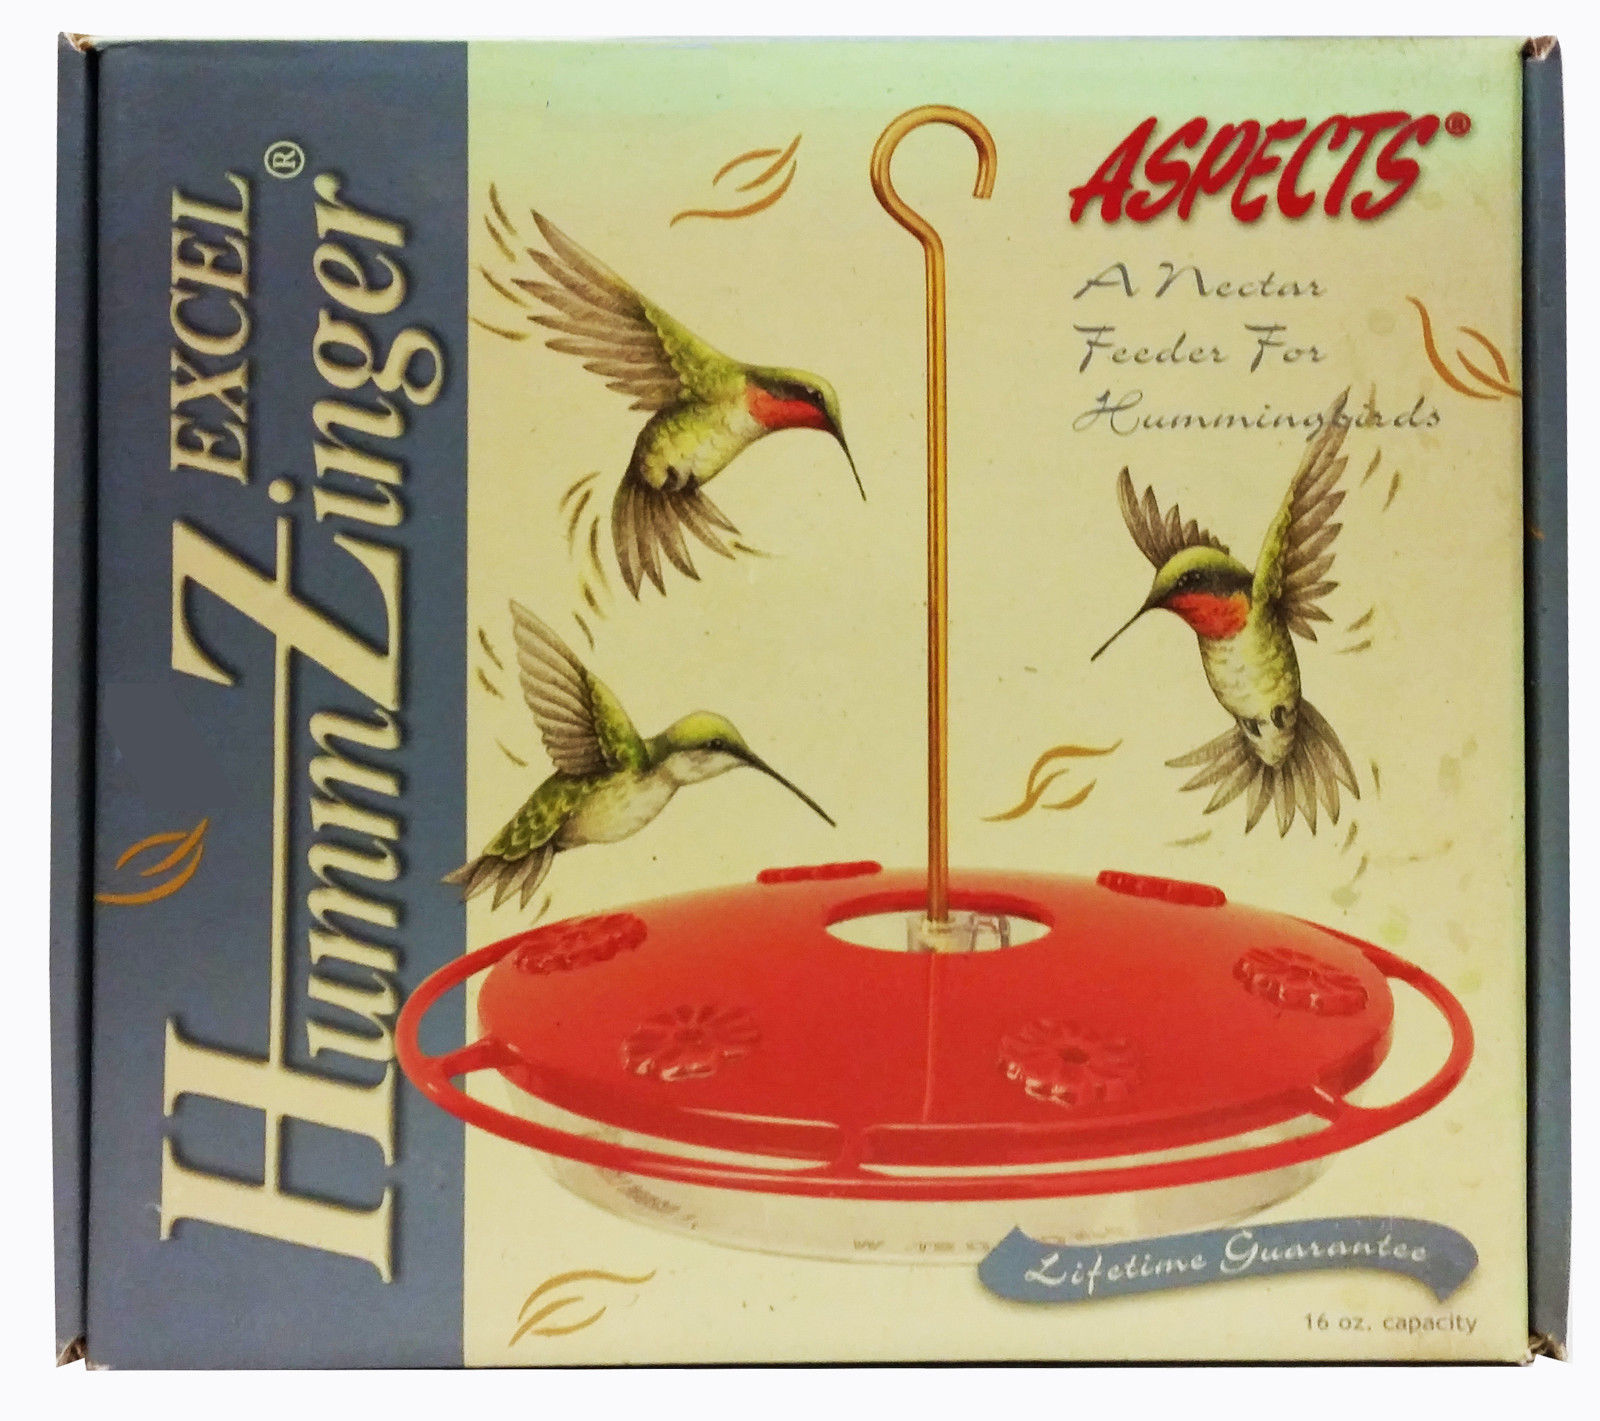 ASPECTS EXCEL - 'HUMM-ZINGER' HUMMINGBRD FEEDER w/ continuous perch